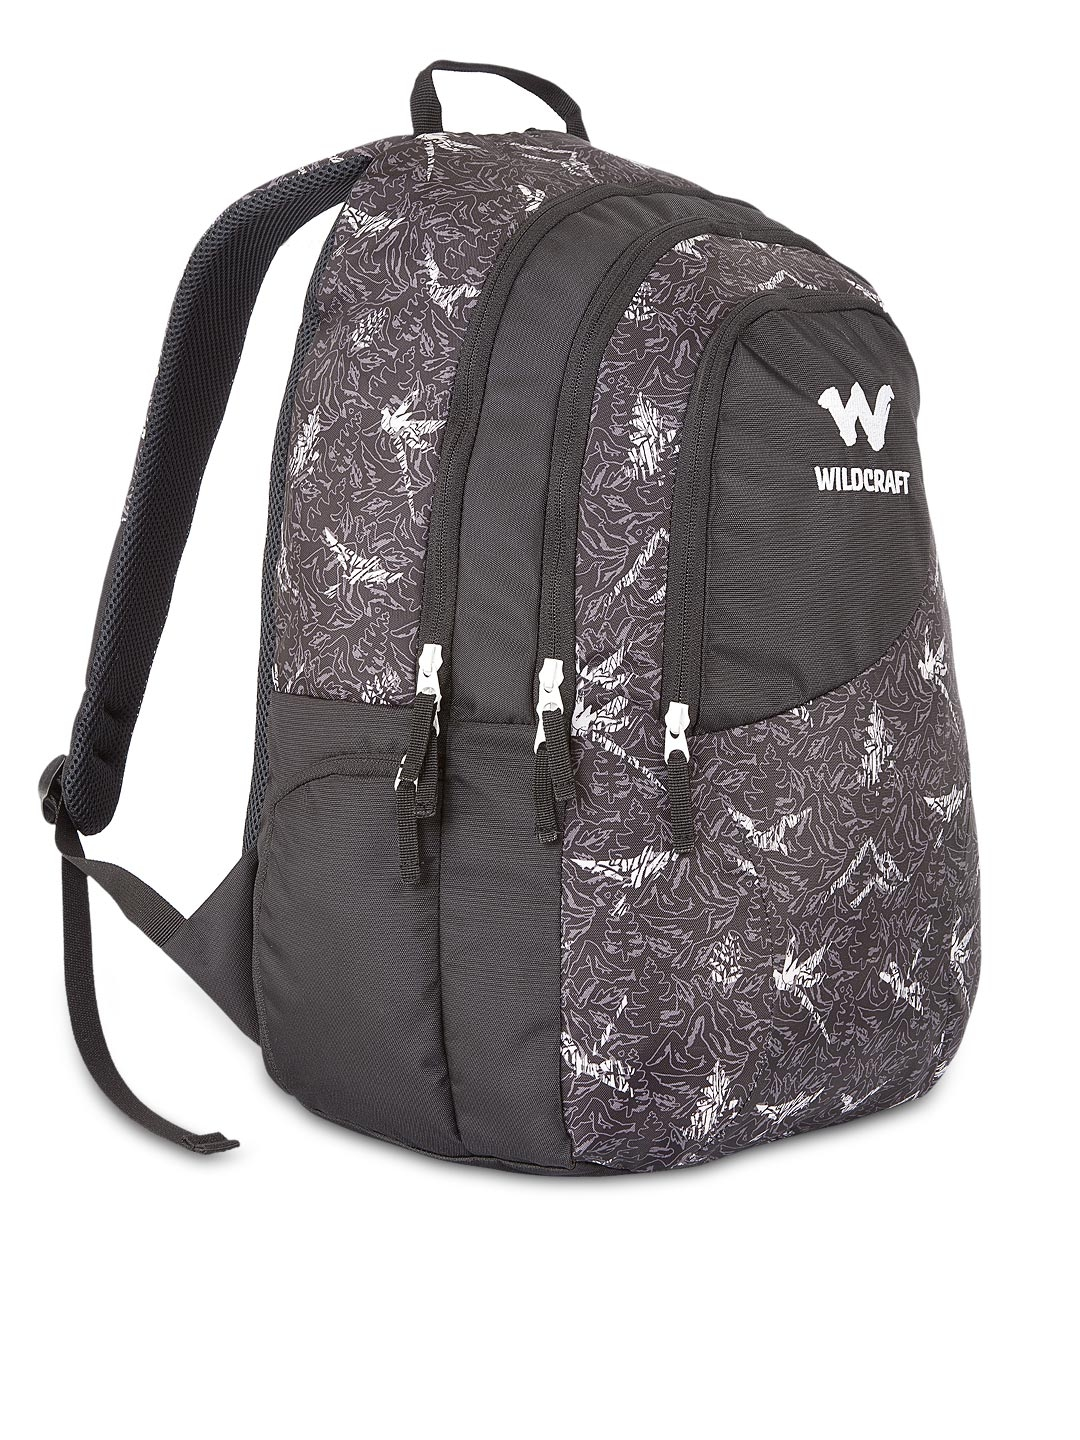 Buy Wildcraft Unisex Black Printed Backpack - Backpacks for Unisex ... 9697c9350434f